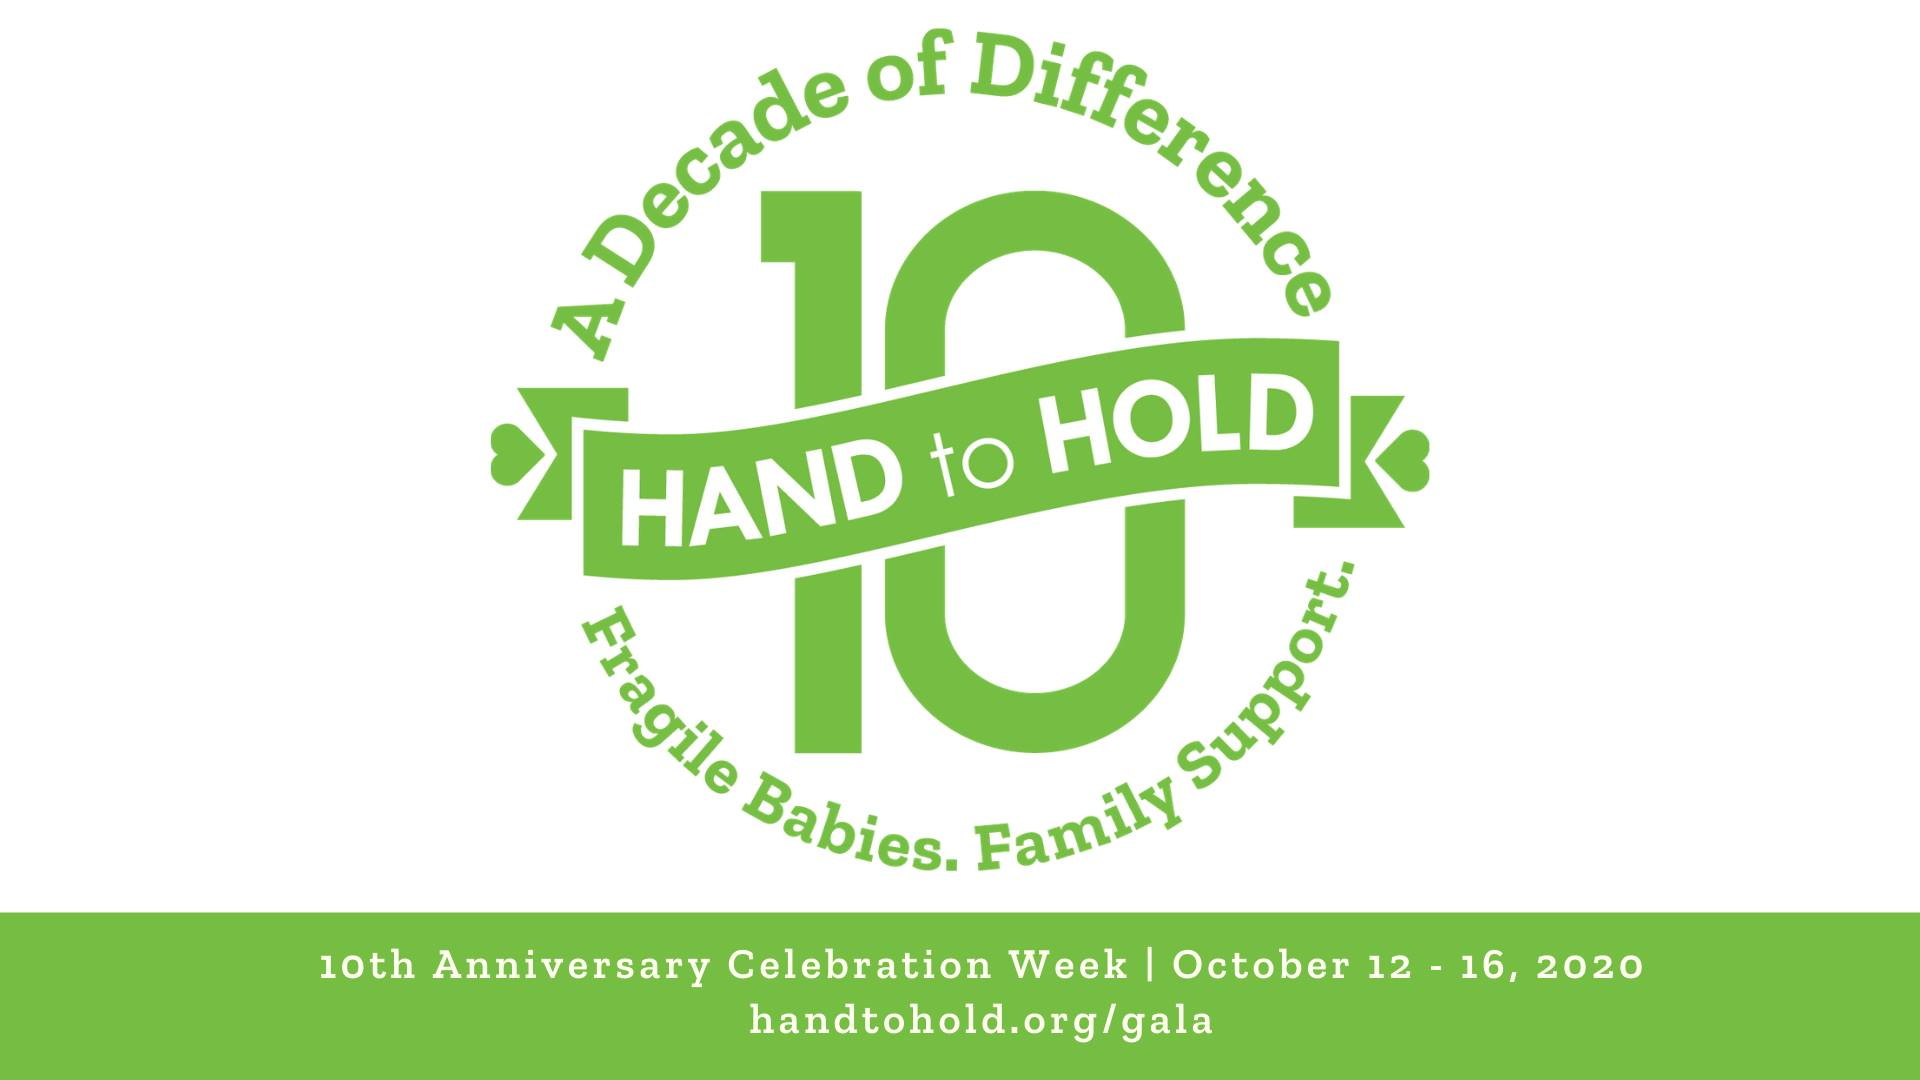 Hand to Hold 10th Anniversary Gala to support NICU and Infant Loss Families - raffle prize sponsored by Barn Chic Boutique